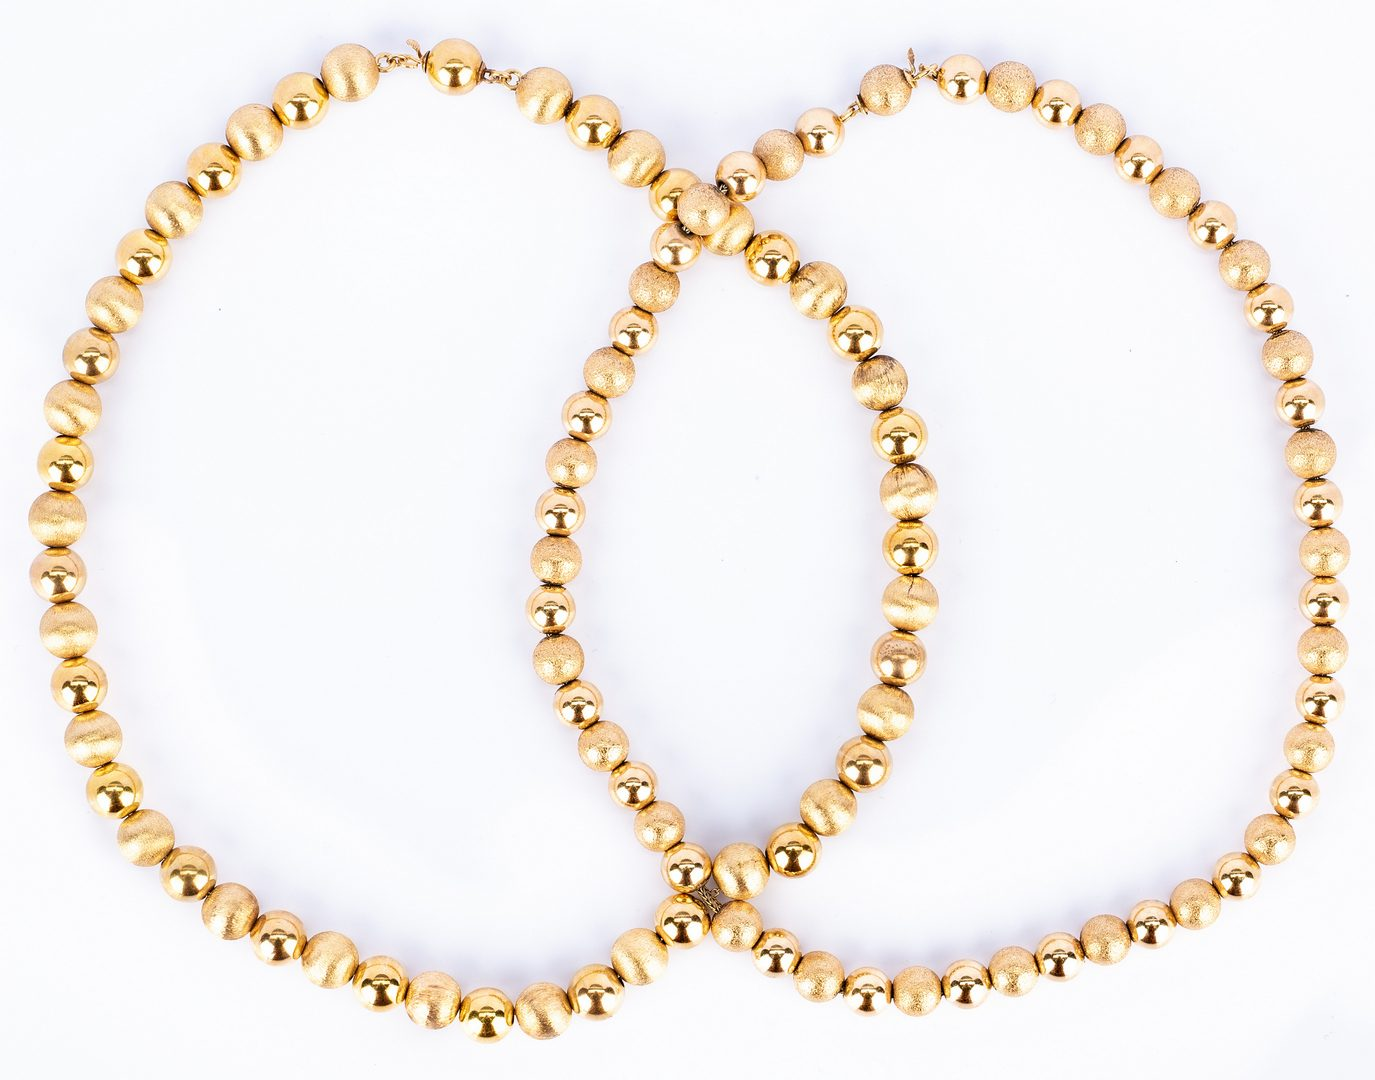 Lot 186: Set of 2 14K Bead Necklaces